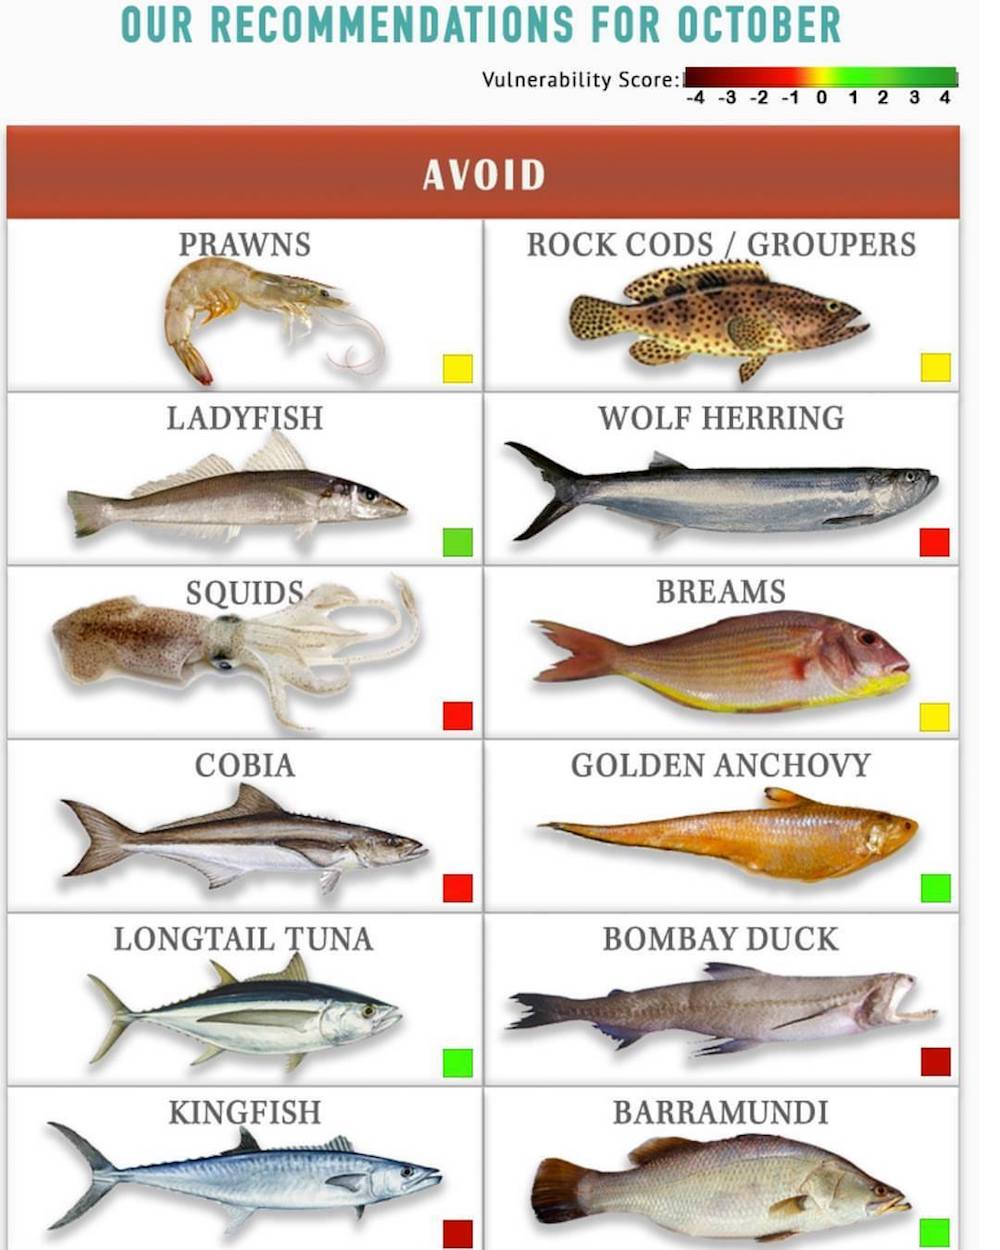 Know Your Fish helps people make responsible and ocean-friendly seafood choices. Image: Facebook/ Know Your Fish